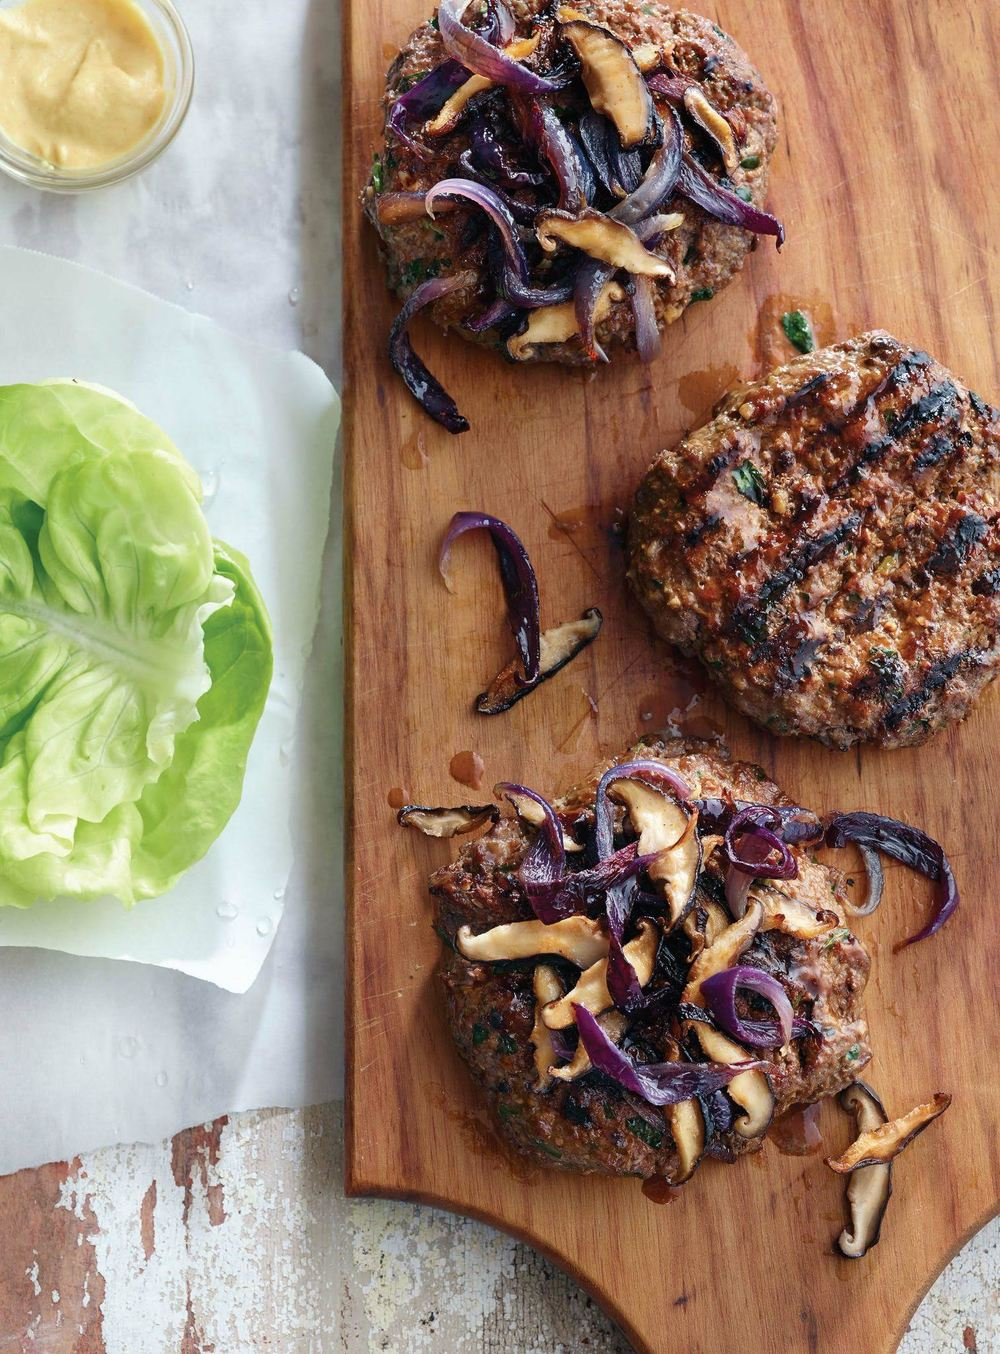 GRILLED BISON BURGERS